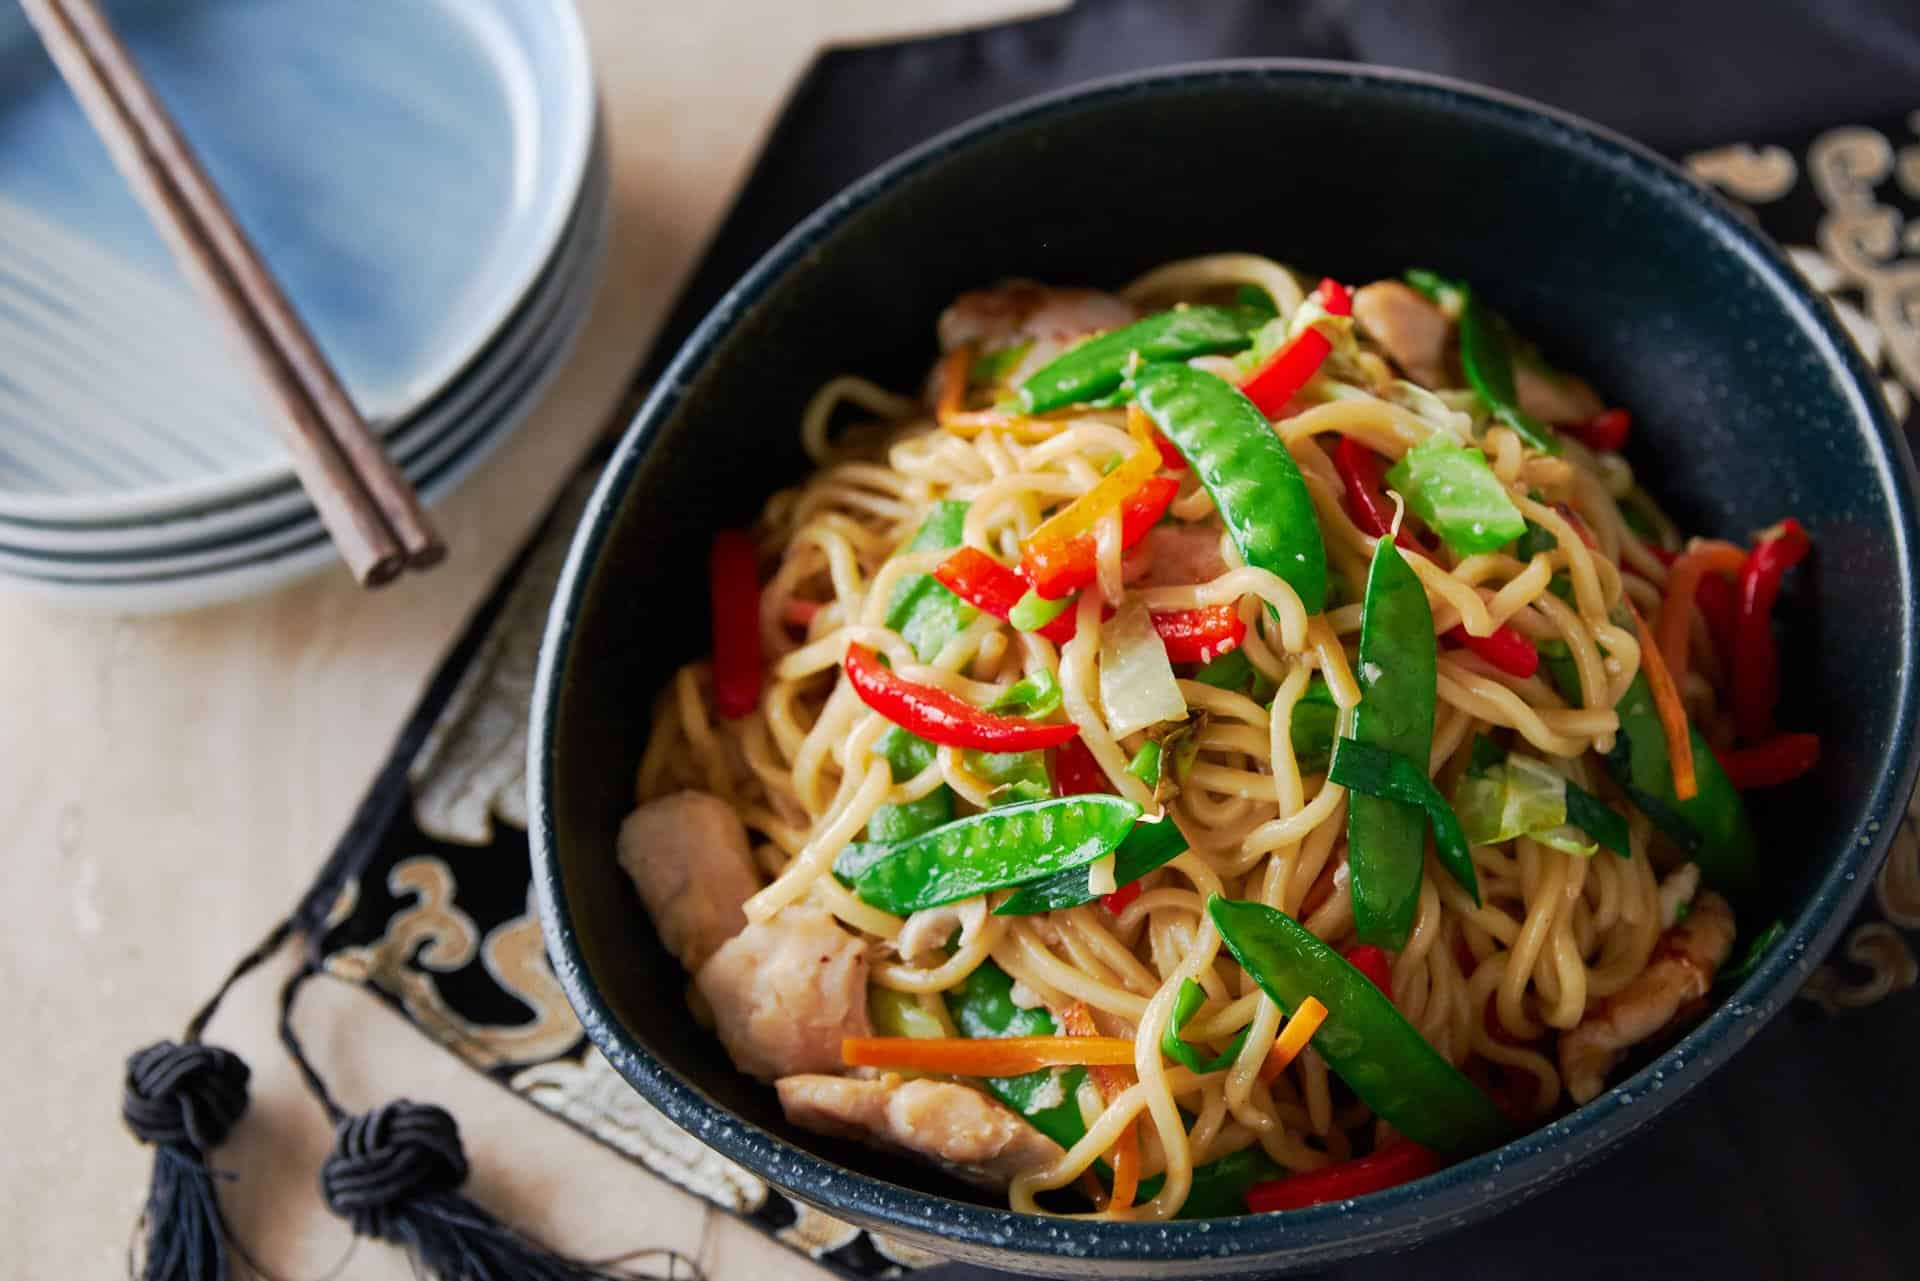 A staple of Chinese-American take-out joints, this Chicken Chow Mein recipe is an easy and delicious one-pan meal.